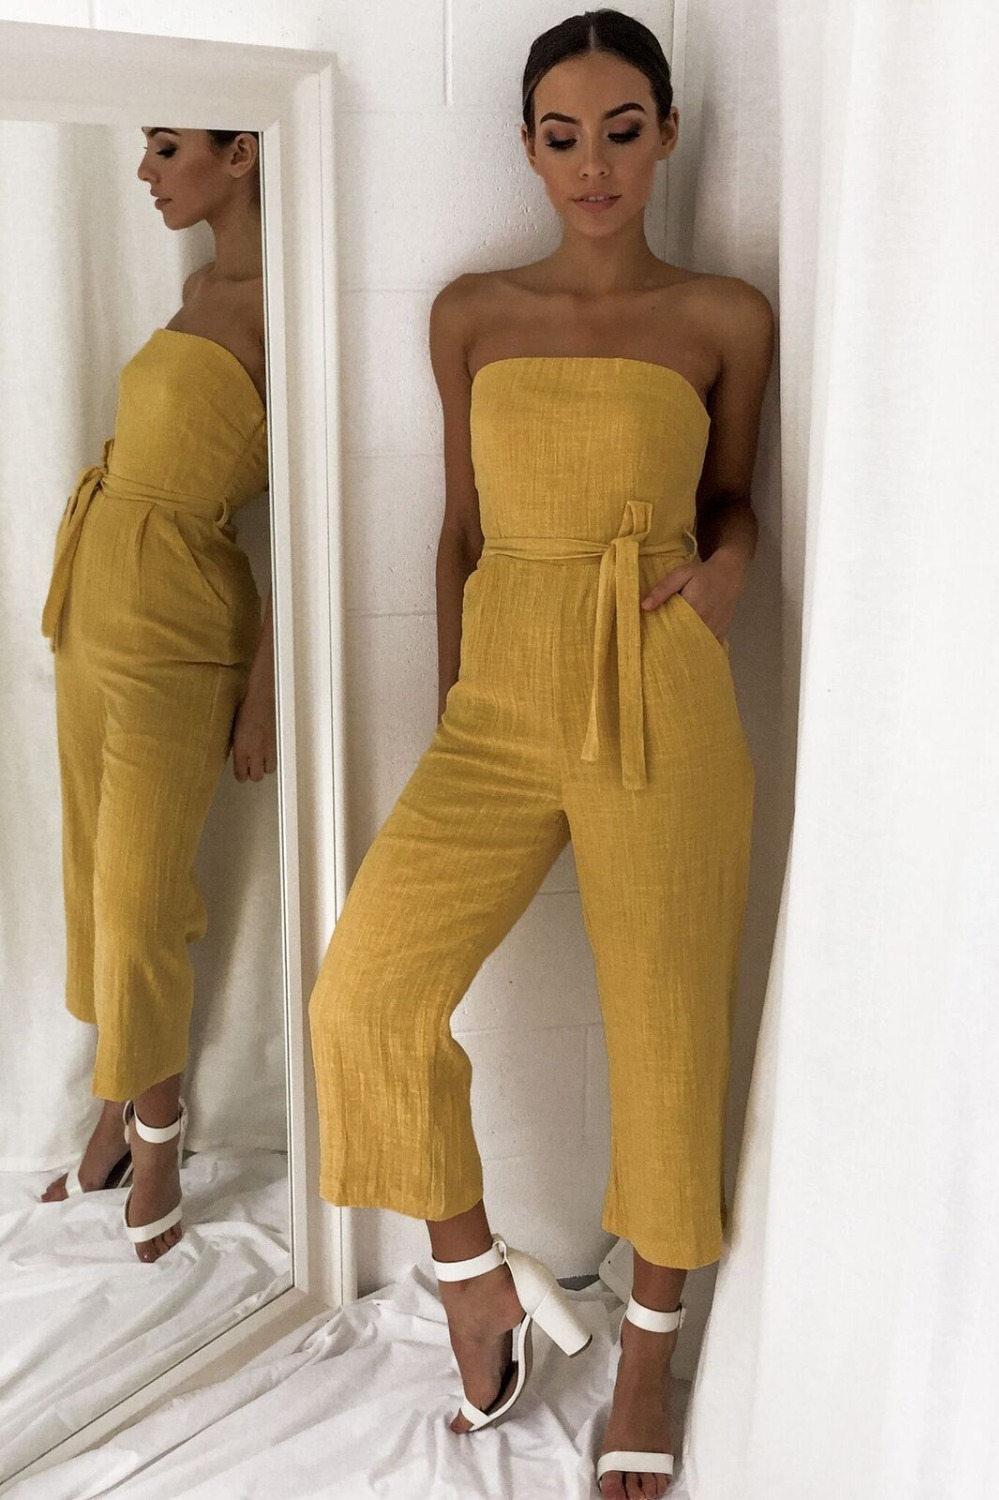 RQOKIA 2019 new fashion solid beach jumpsuit slash neck body suit sleeveless long pants girls beech suit